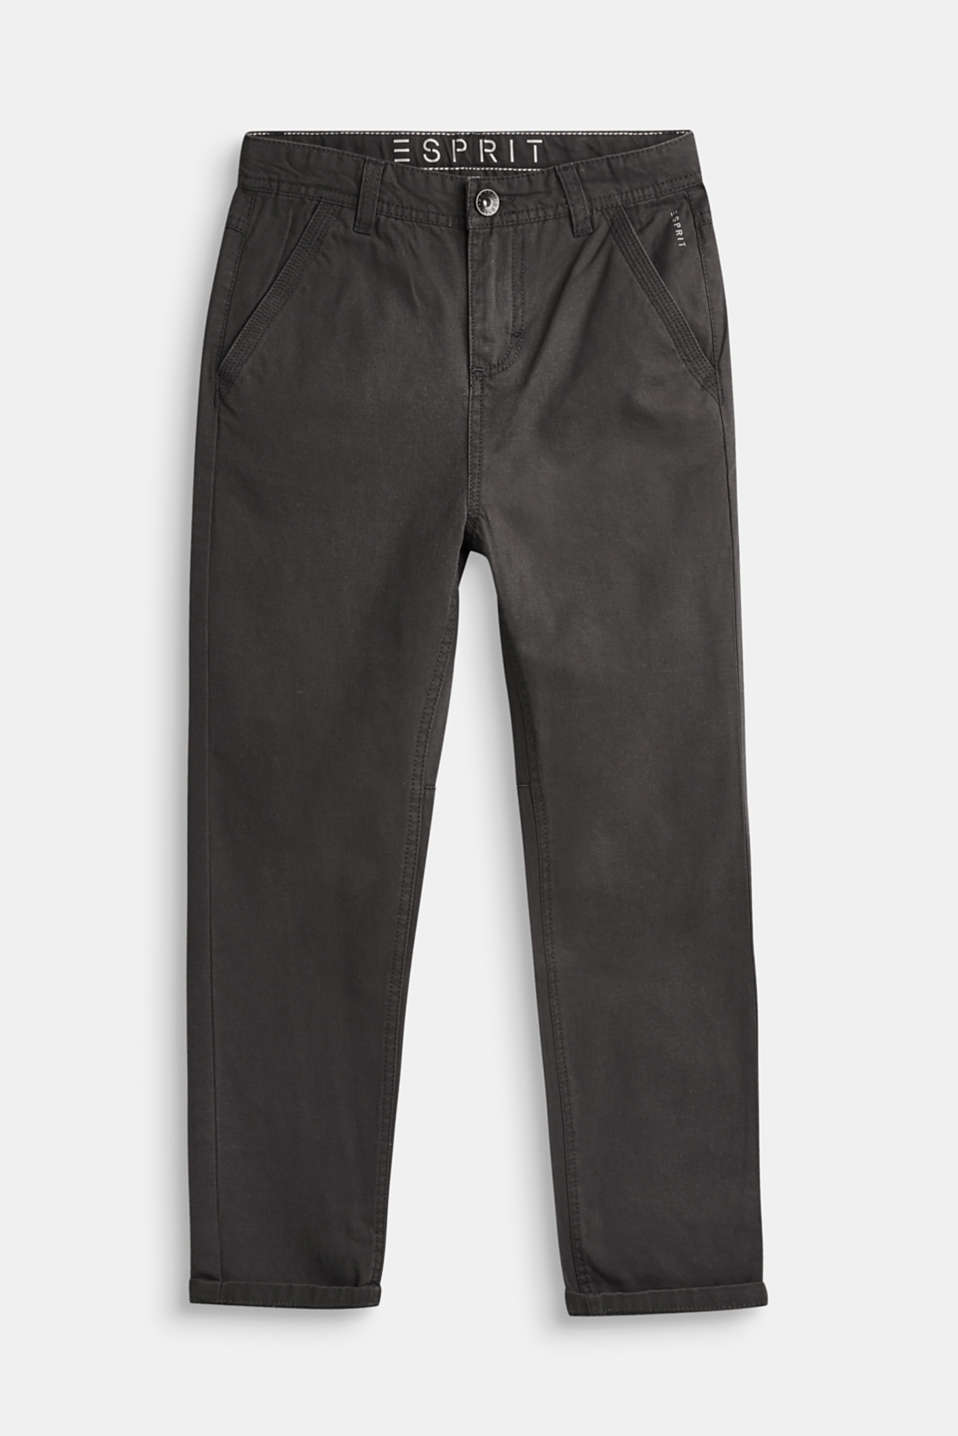 Esprit - 100% cotton chinos